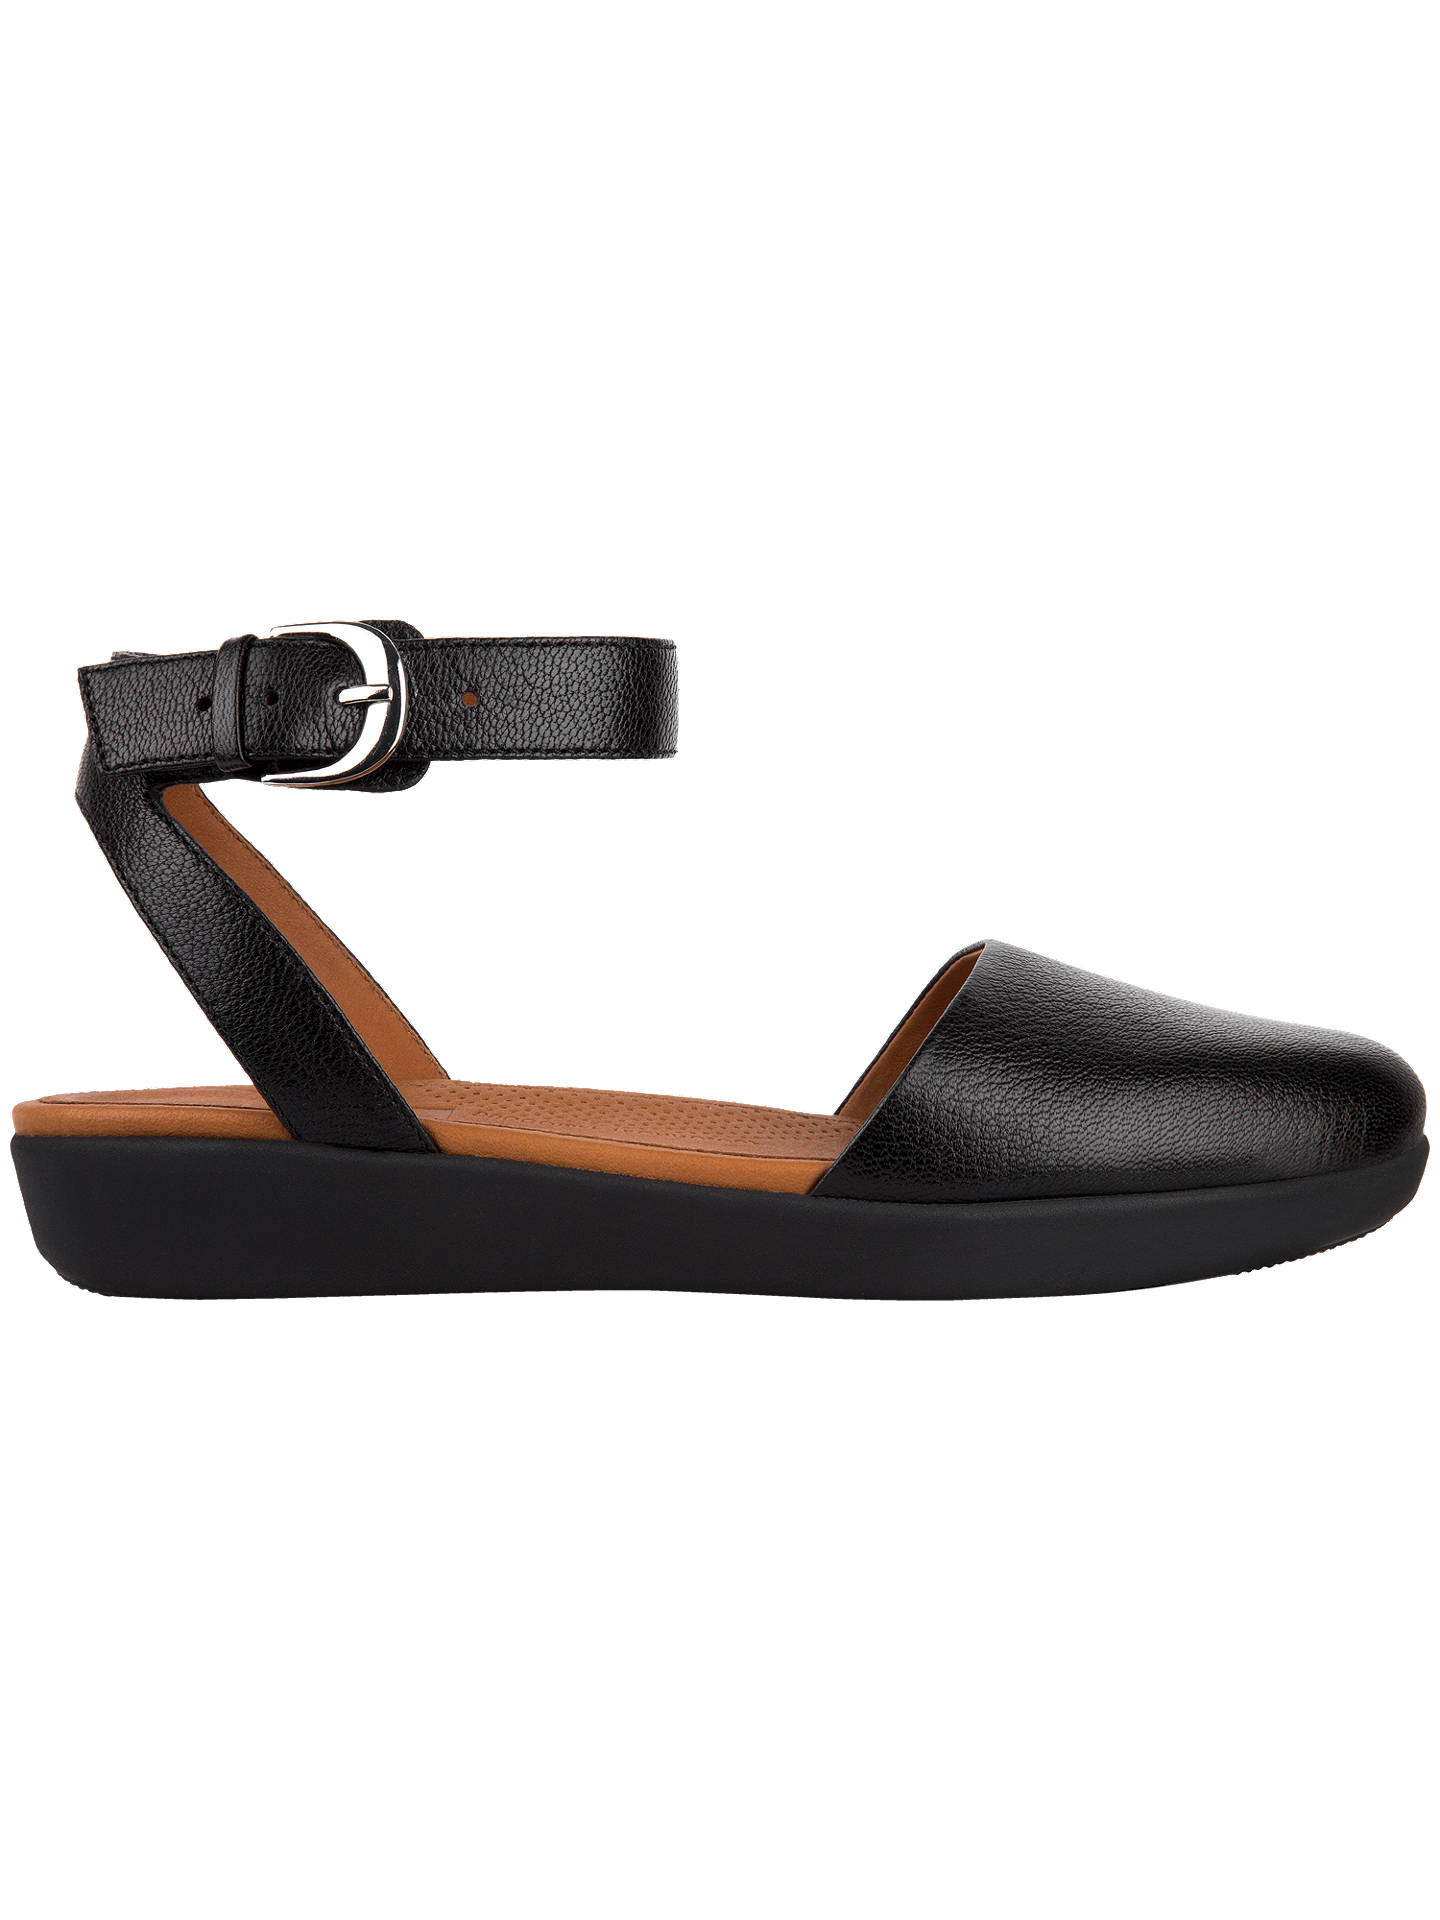 4ae63a9d9 Buy FitFlop Cova Closed Toe Sandals, Black, 5 Online at johnlewis.com ...